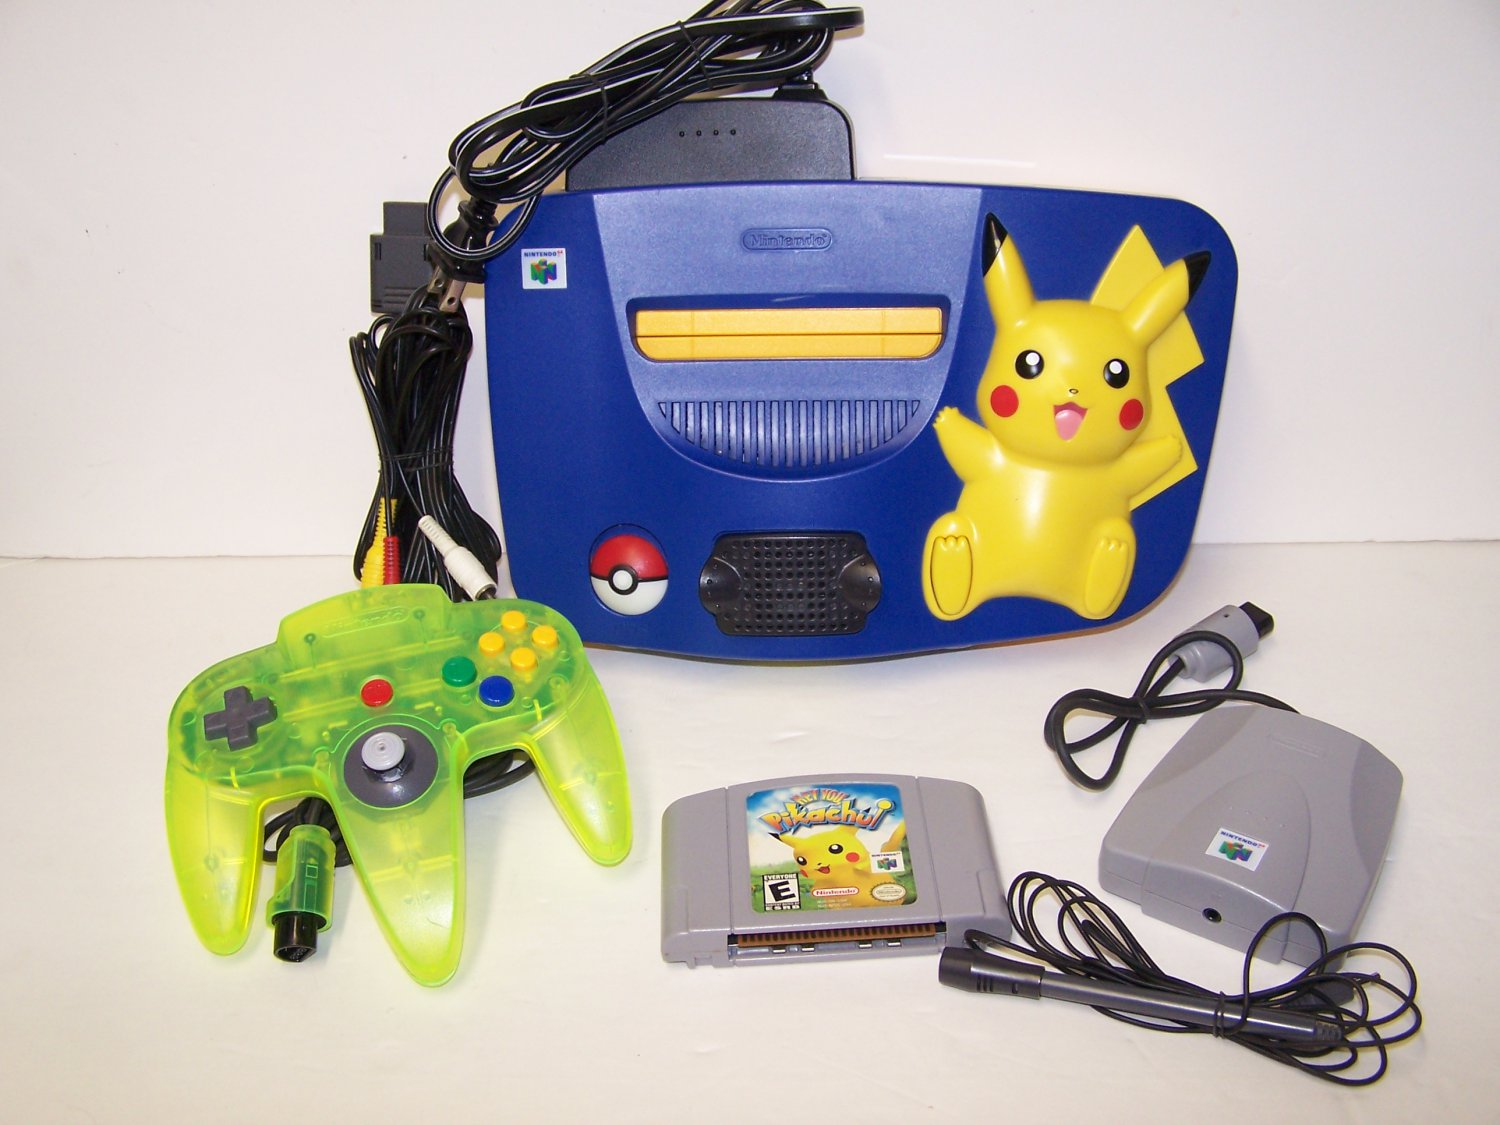 Pikachu Nintendo 64 System - Video Game Console Plus Hey You Pikachu game